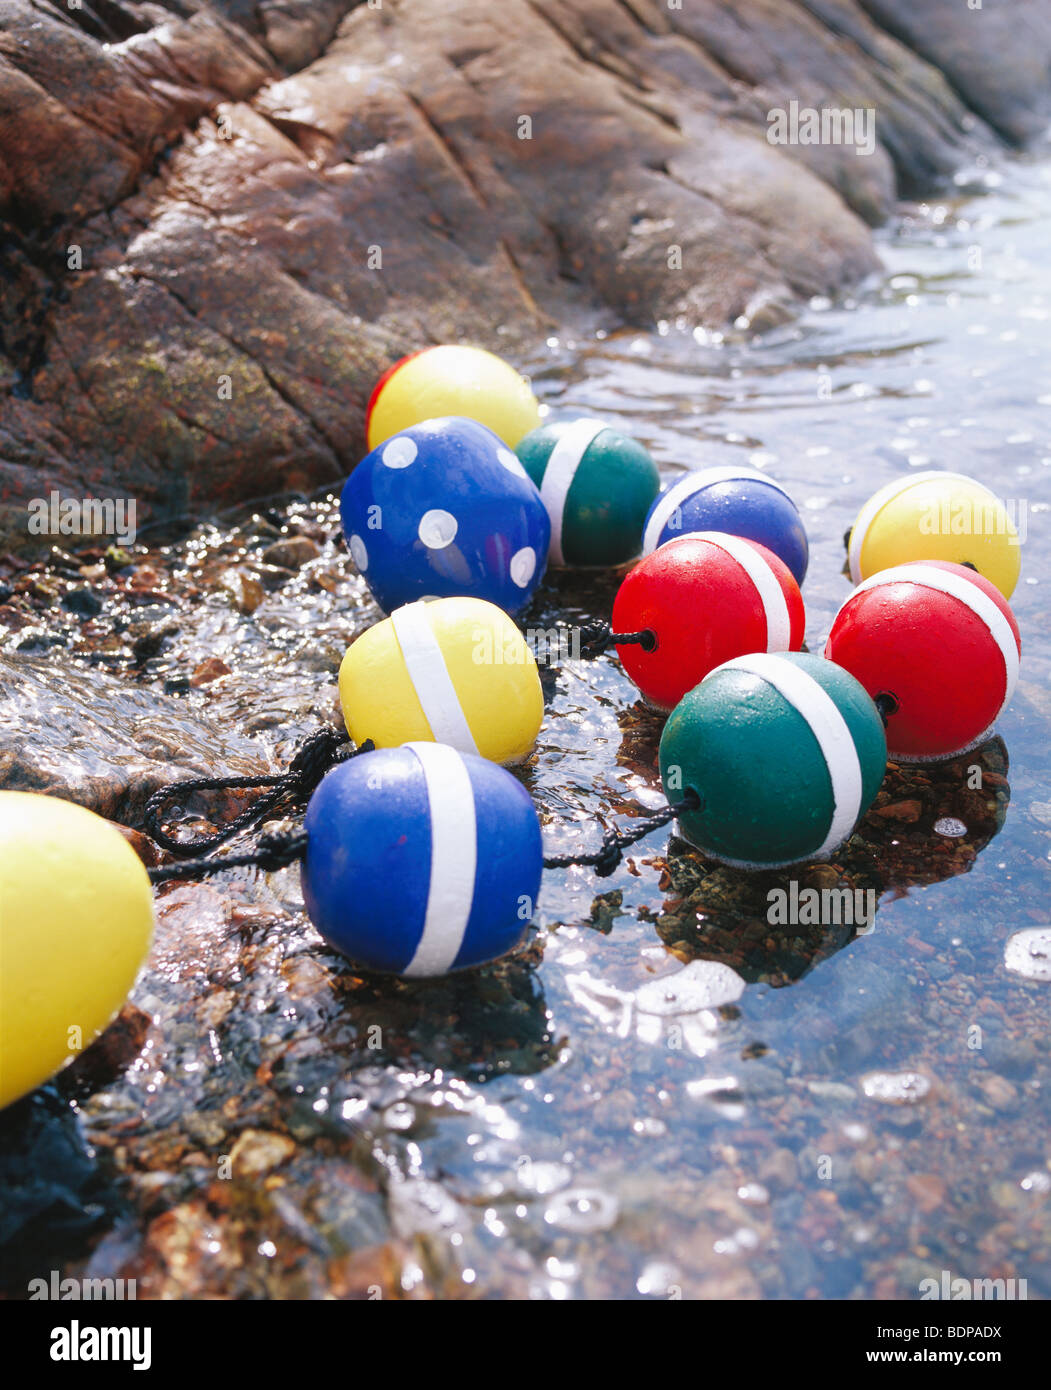 Brightly coloured floats at the water''s edge, Sweden. Stock Photo